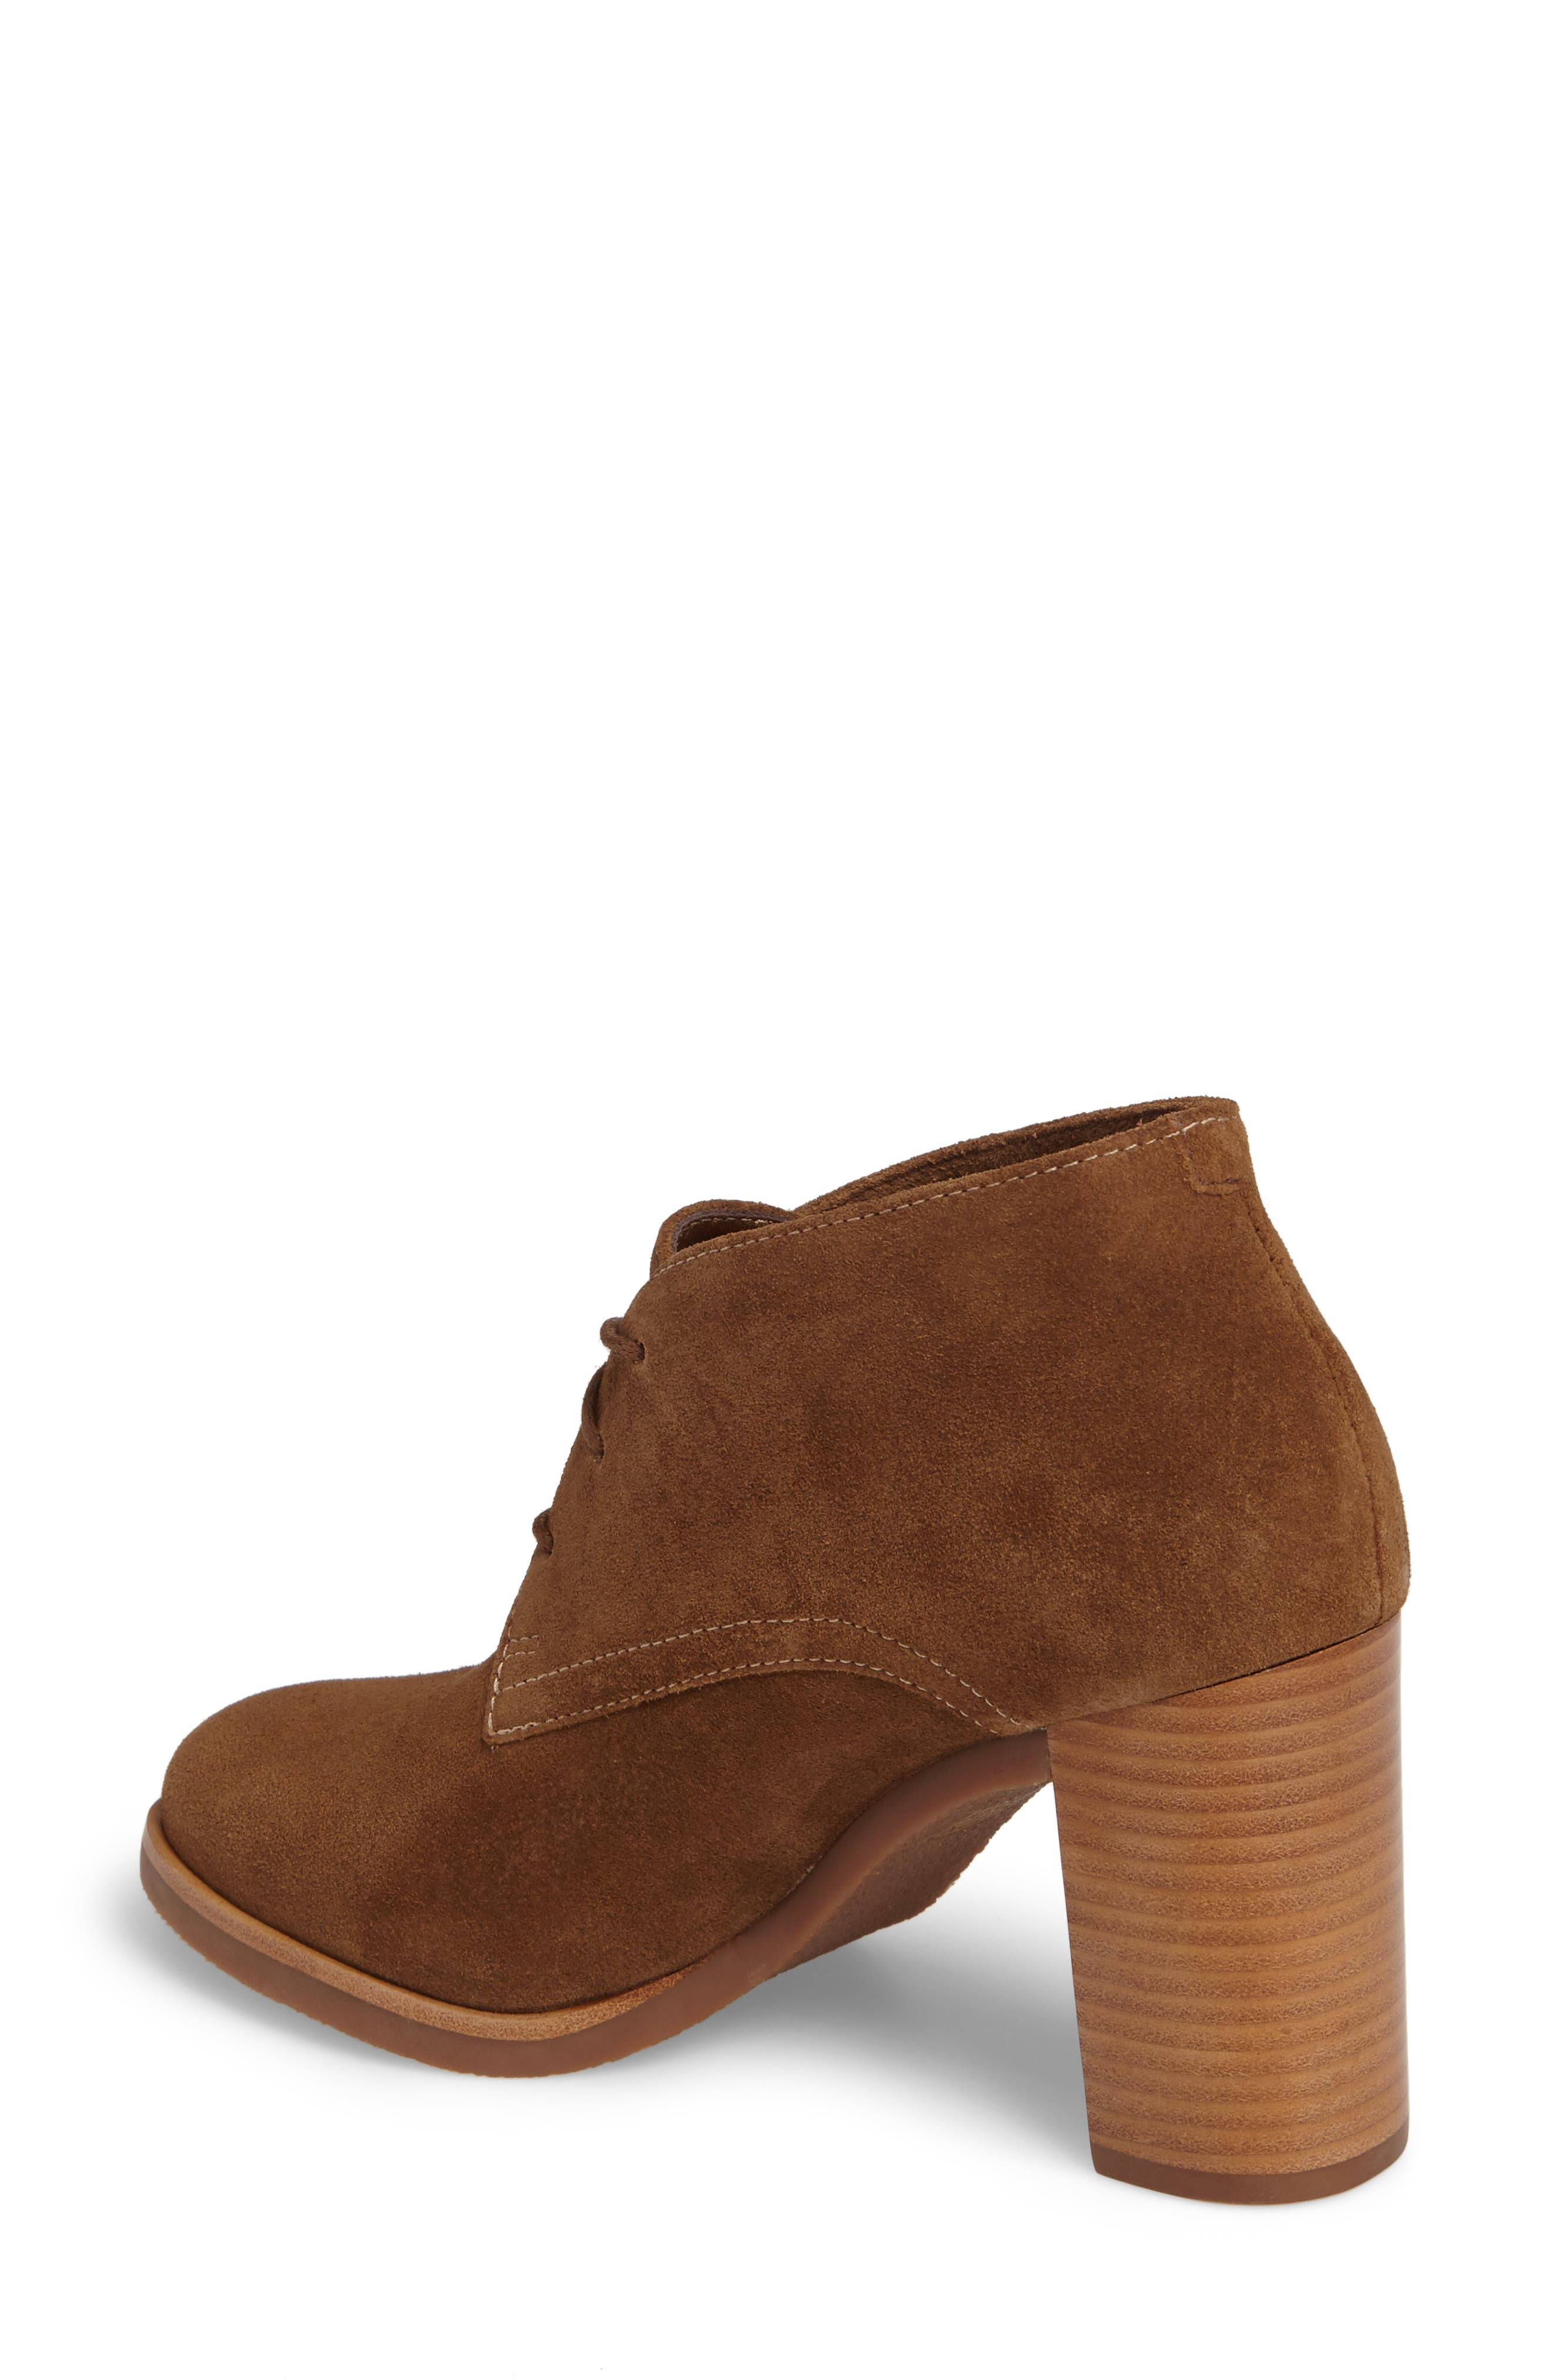 Alayna Lace-Up Bootie,                             Alternate thumbnail 2, color,                             200